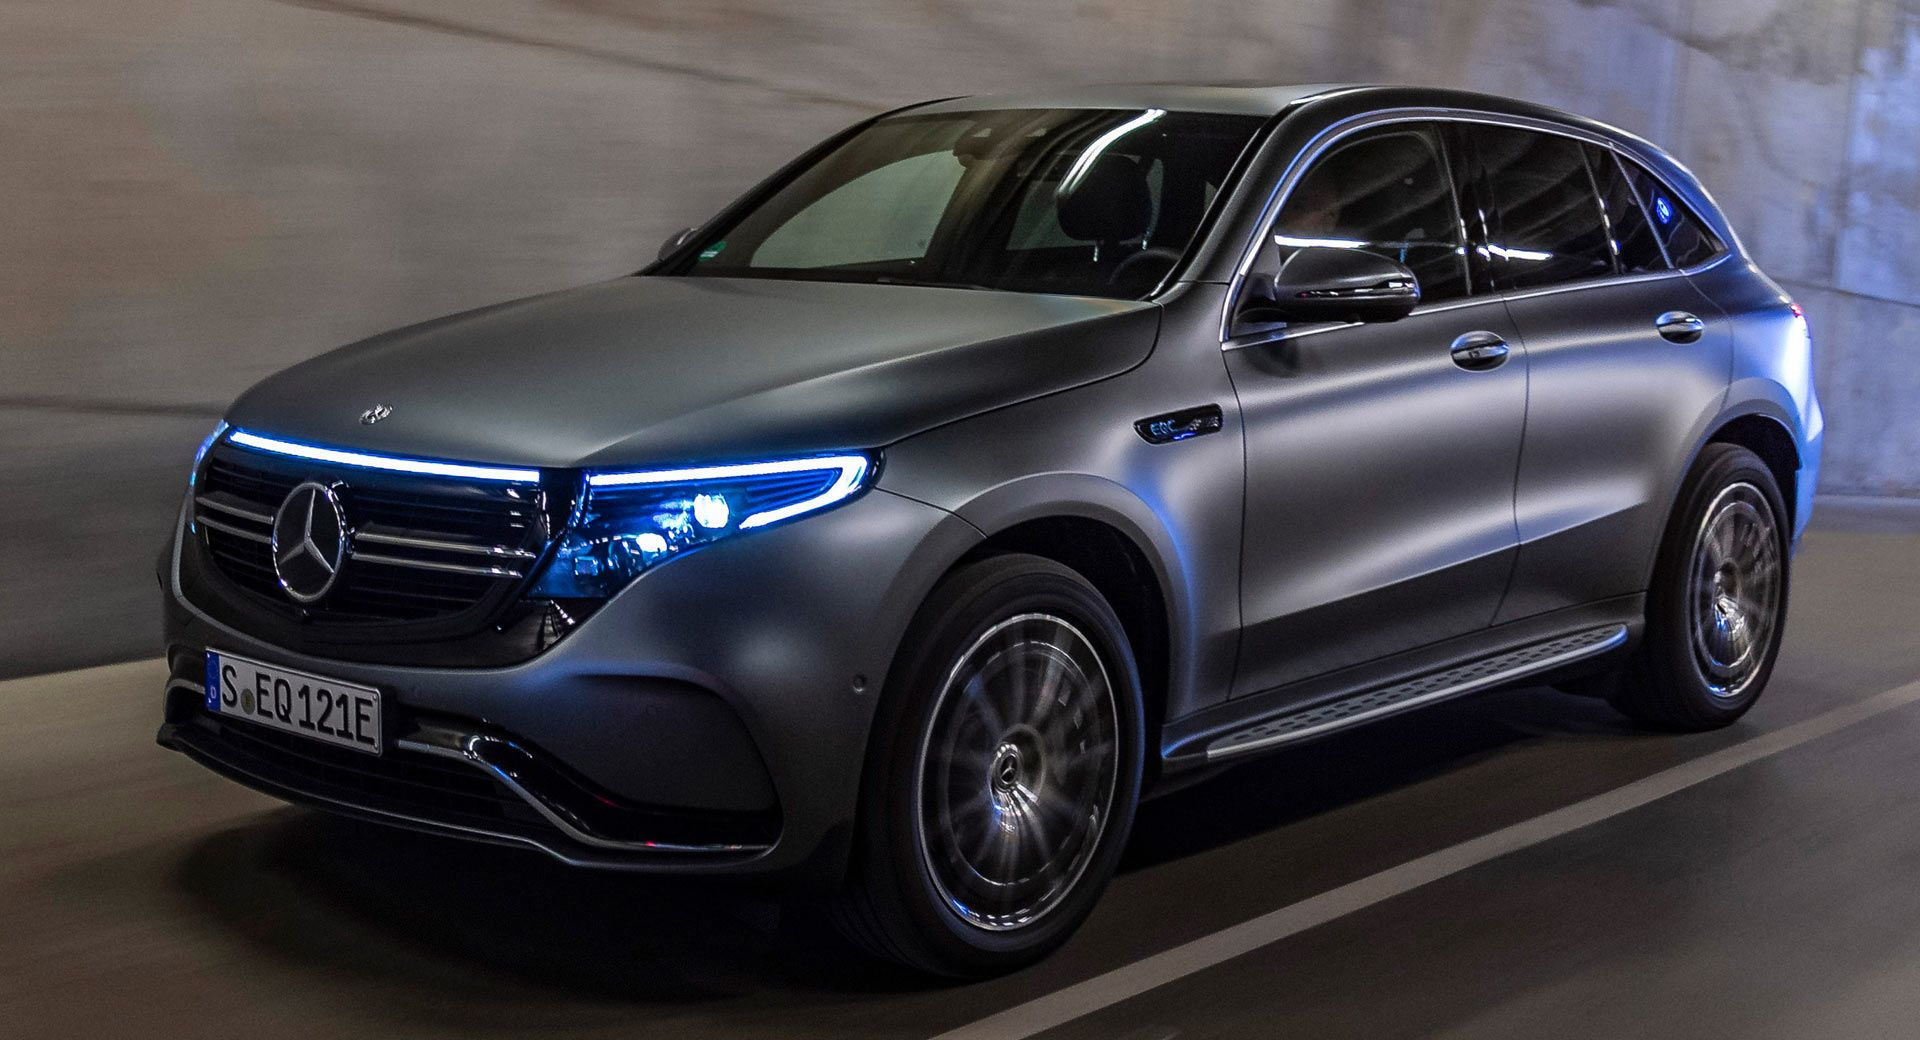 Mercedes Eqc Us Launch Delayed As Company Decides To Focus On Europe First Electricvehicles Mercedes Mercedeseqc Reports Car Mercedes Benz Super Cars Benz